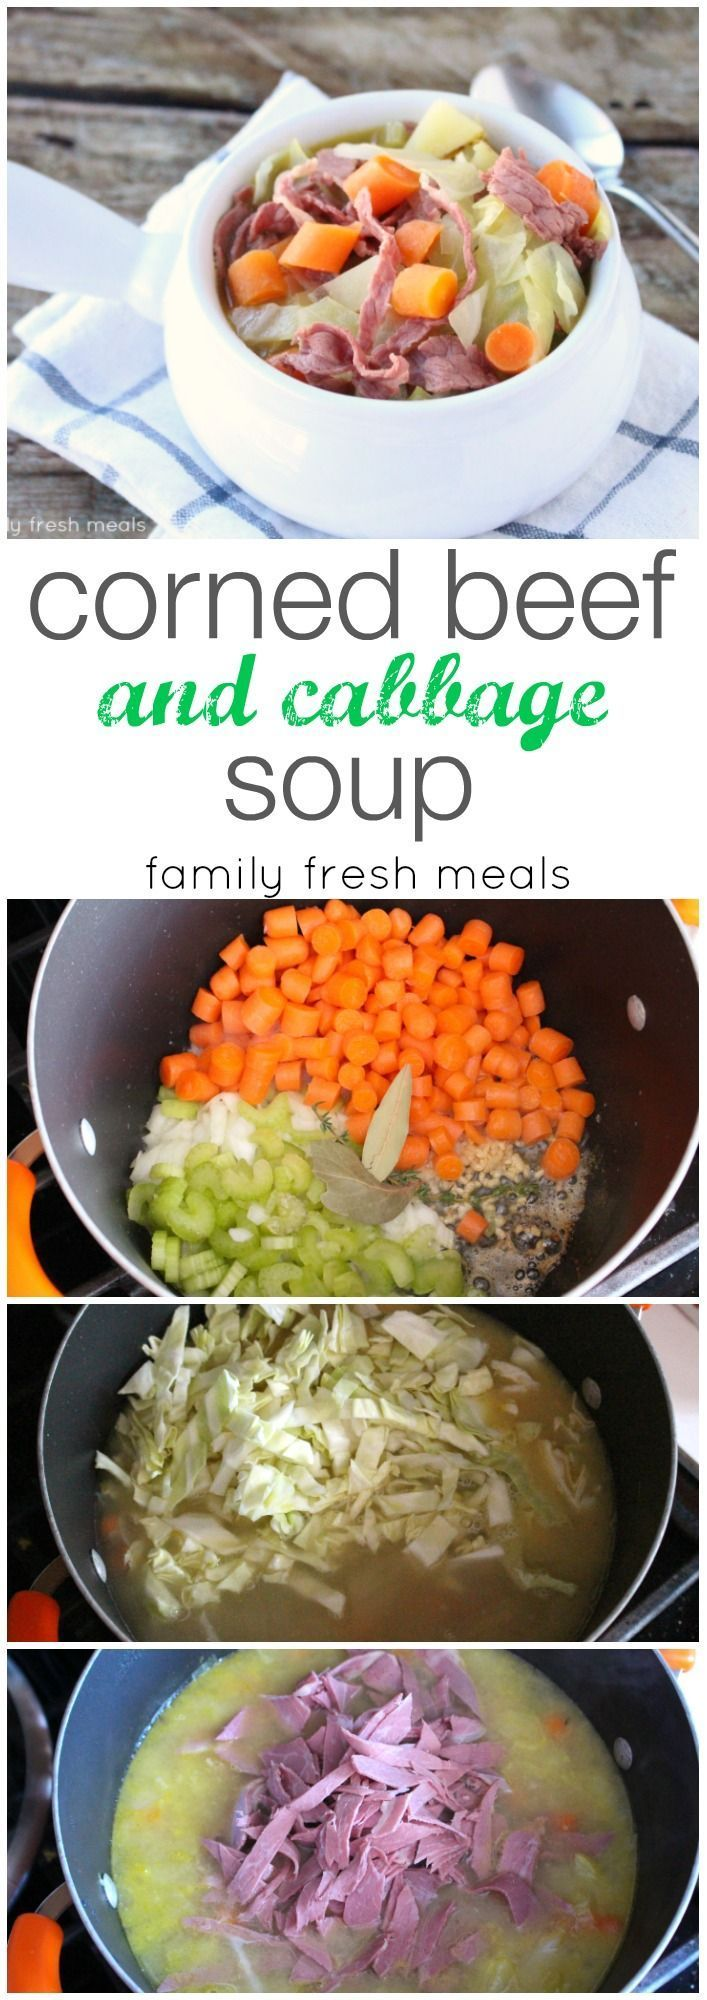 Beef and Cabbage Soup | Recipe | Corned Beef And Cabbage, Cabbage Soup ...